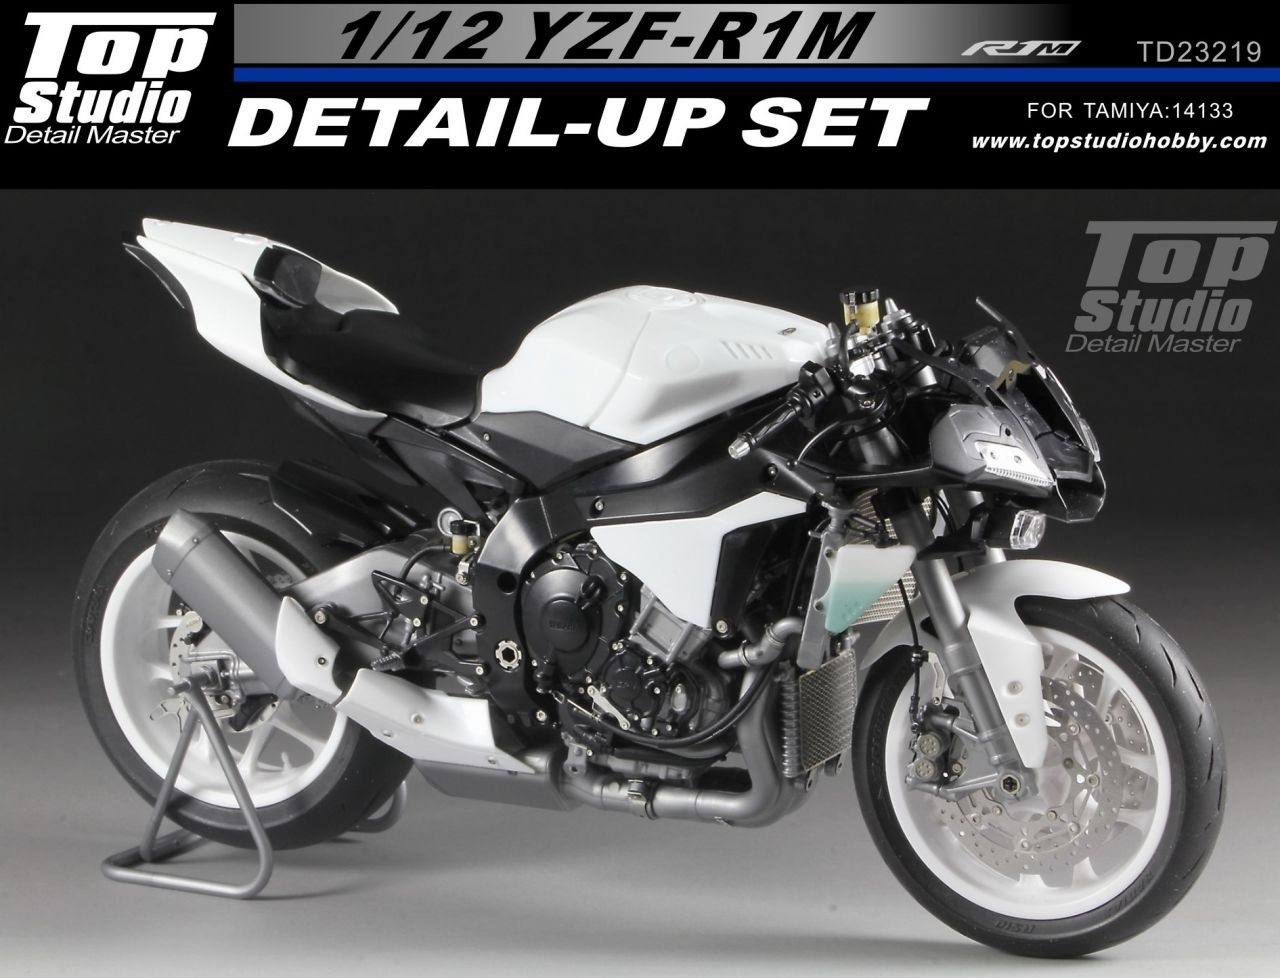 Top Studio TD23219 YZF-R1M Detail-up Set